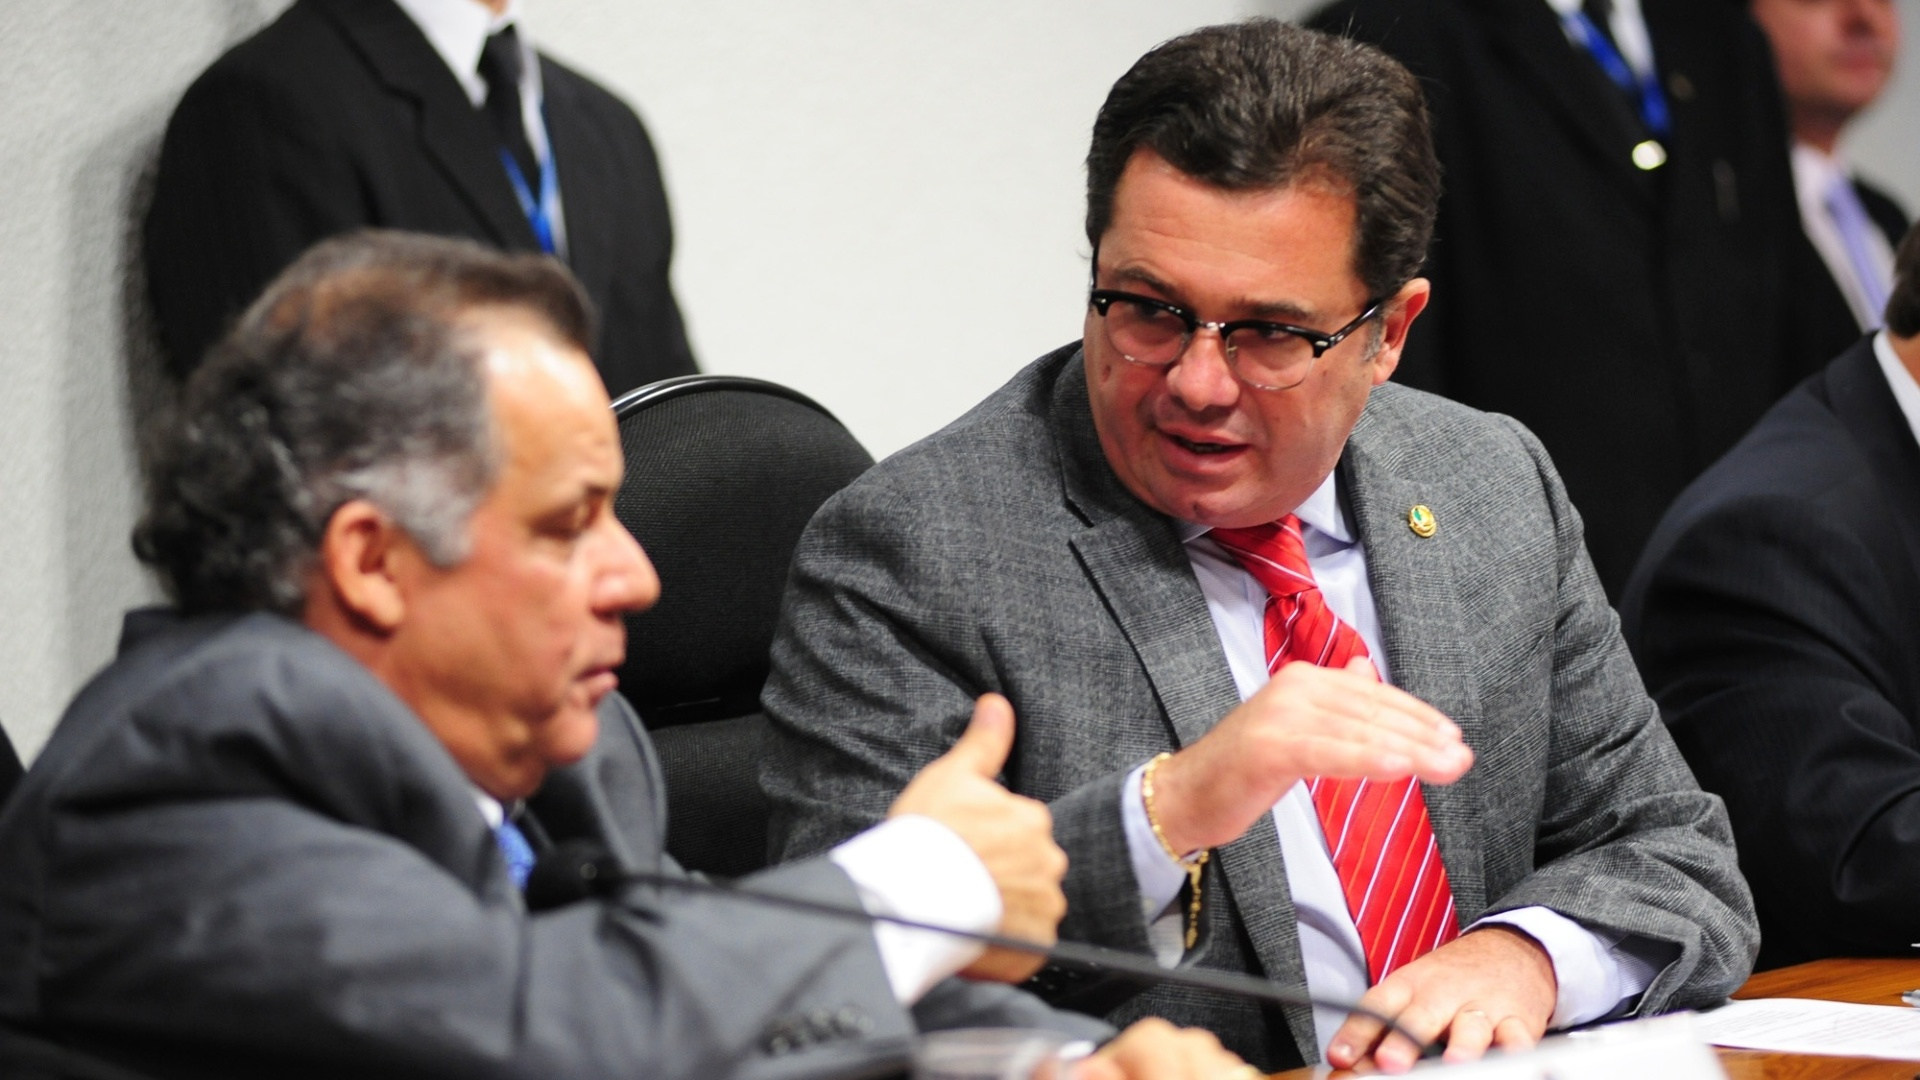 9.out.2012 - Senador Vital do Rgo (PMDB-PB) questiona o deputado federalDep. Carlos Alberto Leria (PSDB-GO) sobre seu envolvimento com o esquema do contraventor Carlinhos Cachoeira. Segundo a Polcia Federal, Leria e Cachoeira conversaram por telefone pelo menos 72 vezes entre maro e julho de 2011. O nome do deputado  citado em outros 26 telefonemas entre o bixeiro e supostos membros da sua organizao 